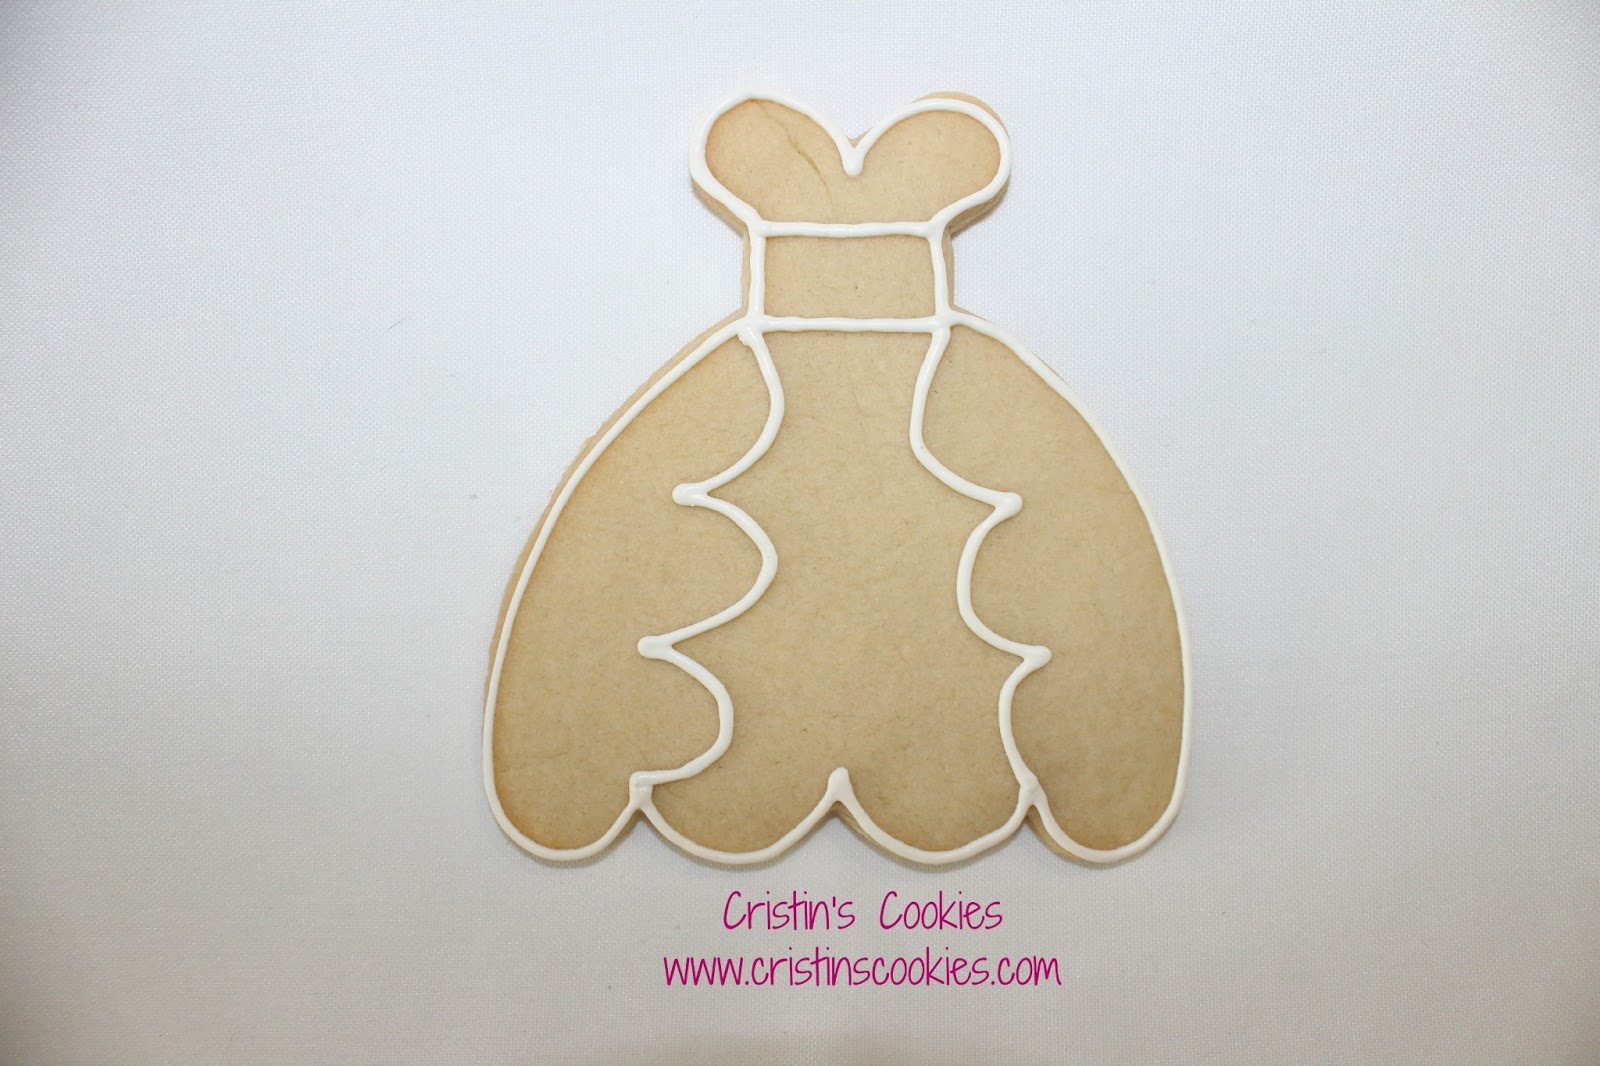 wedding dress cookies and new cookie wedding dress cookie cutter for my wedding dress cookies here s one of them outlined and ready to decorate If you d like to copy it just right click on the photo and save it to